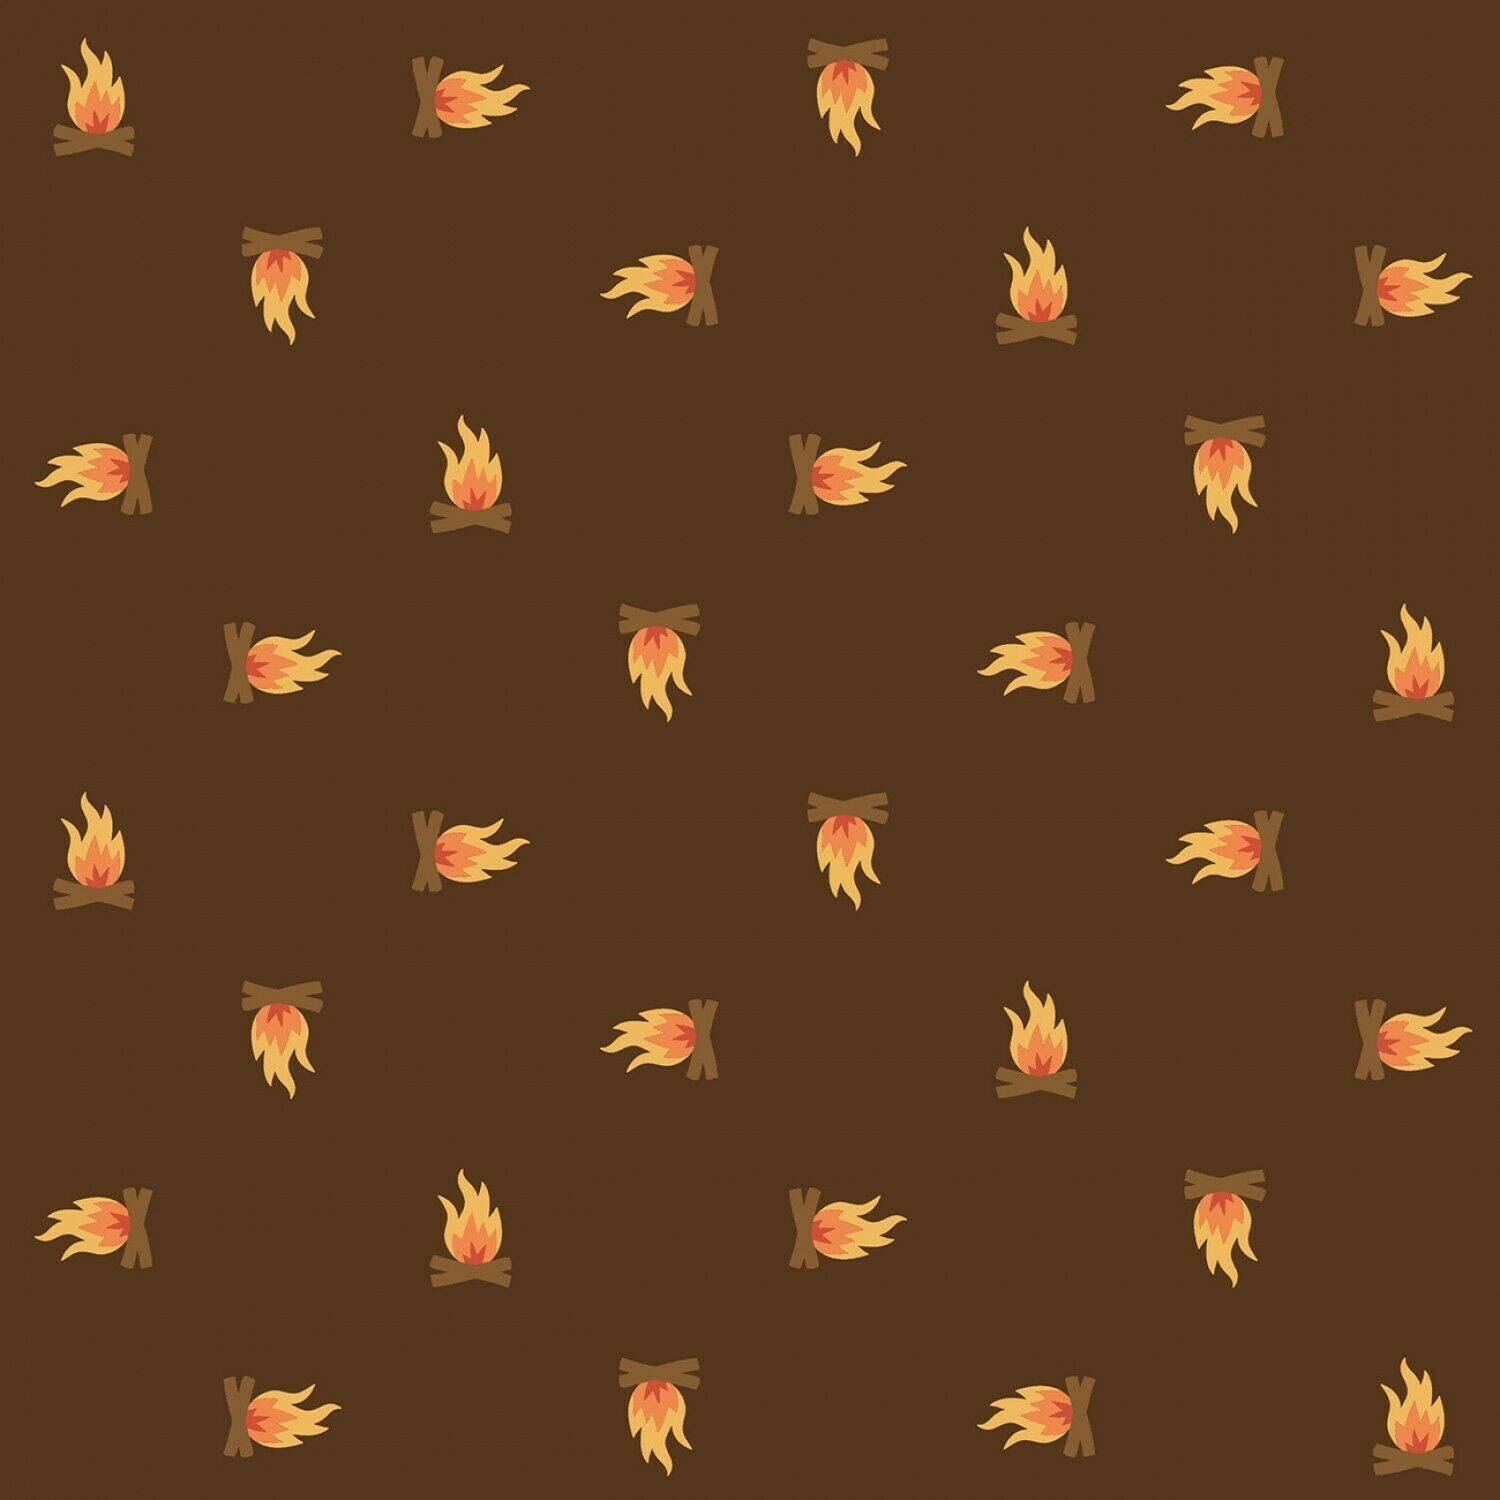 Campfire Fabric by RJR Studio Camping Crew Collection Sold By the Yard